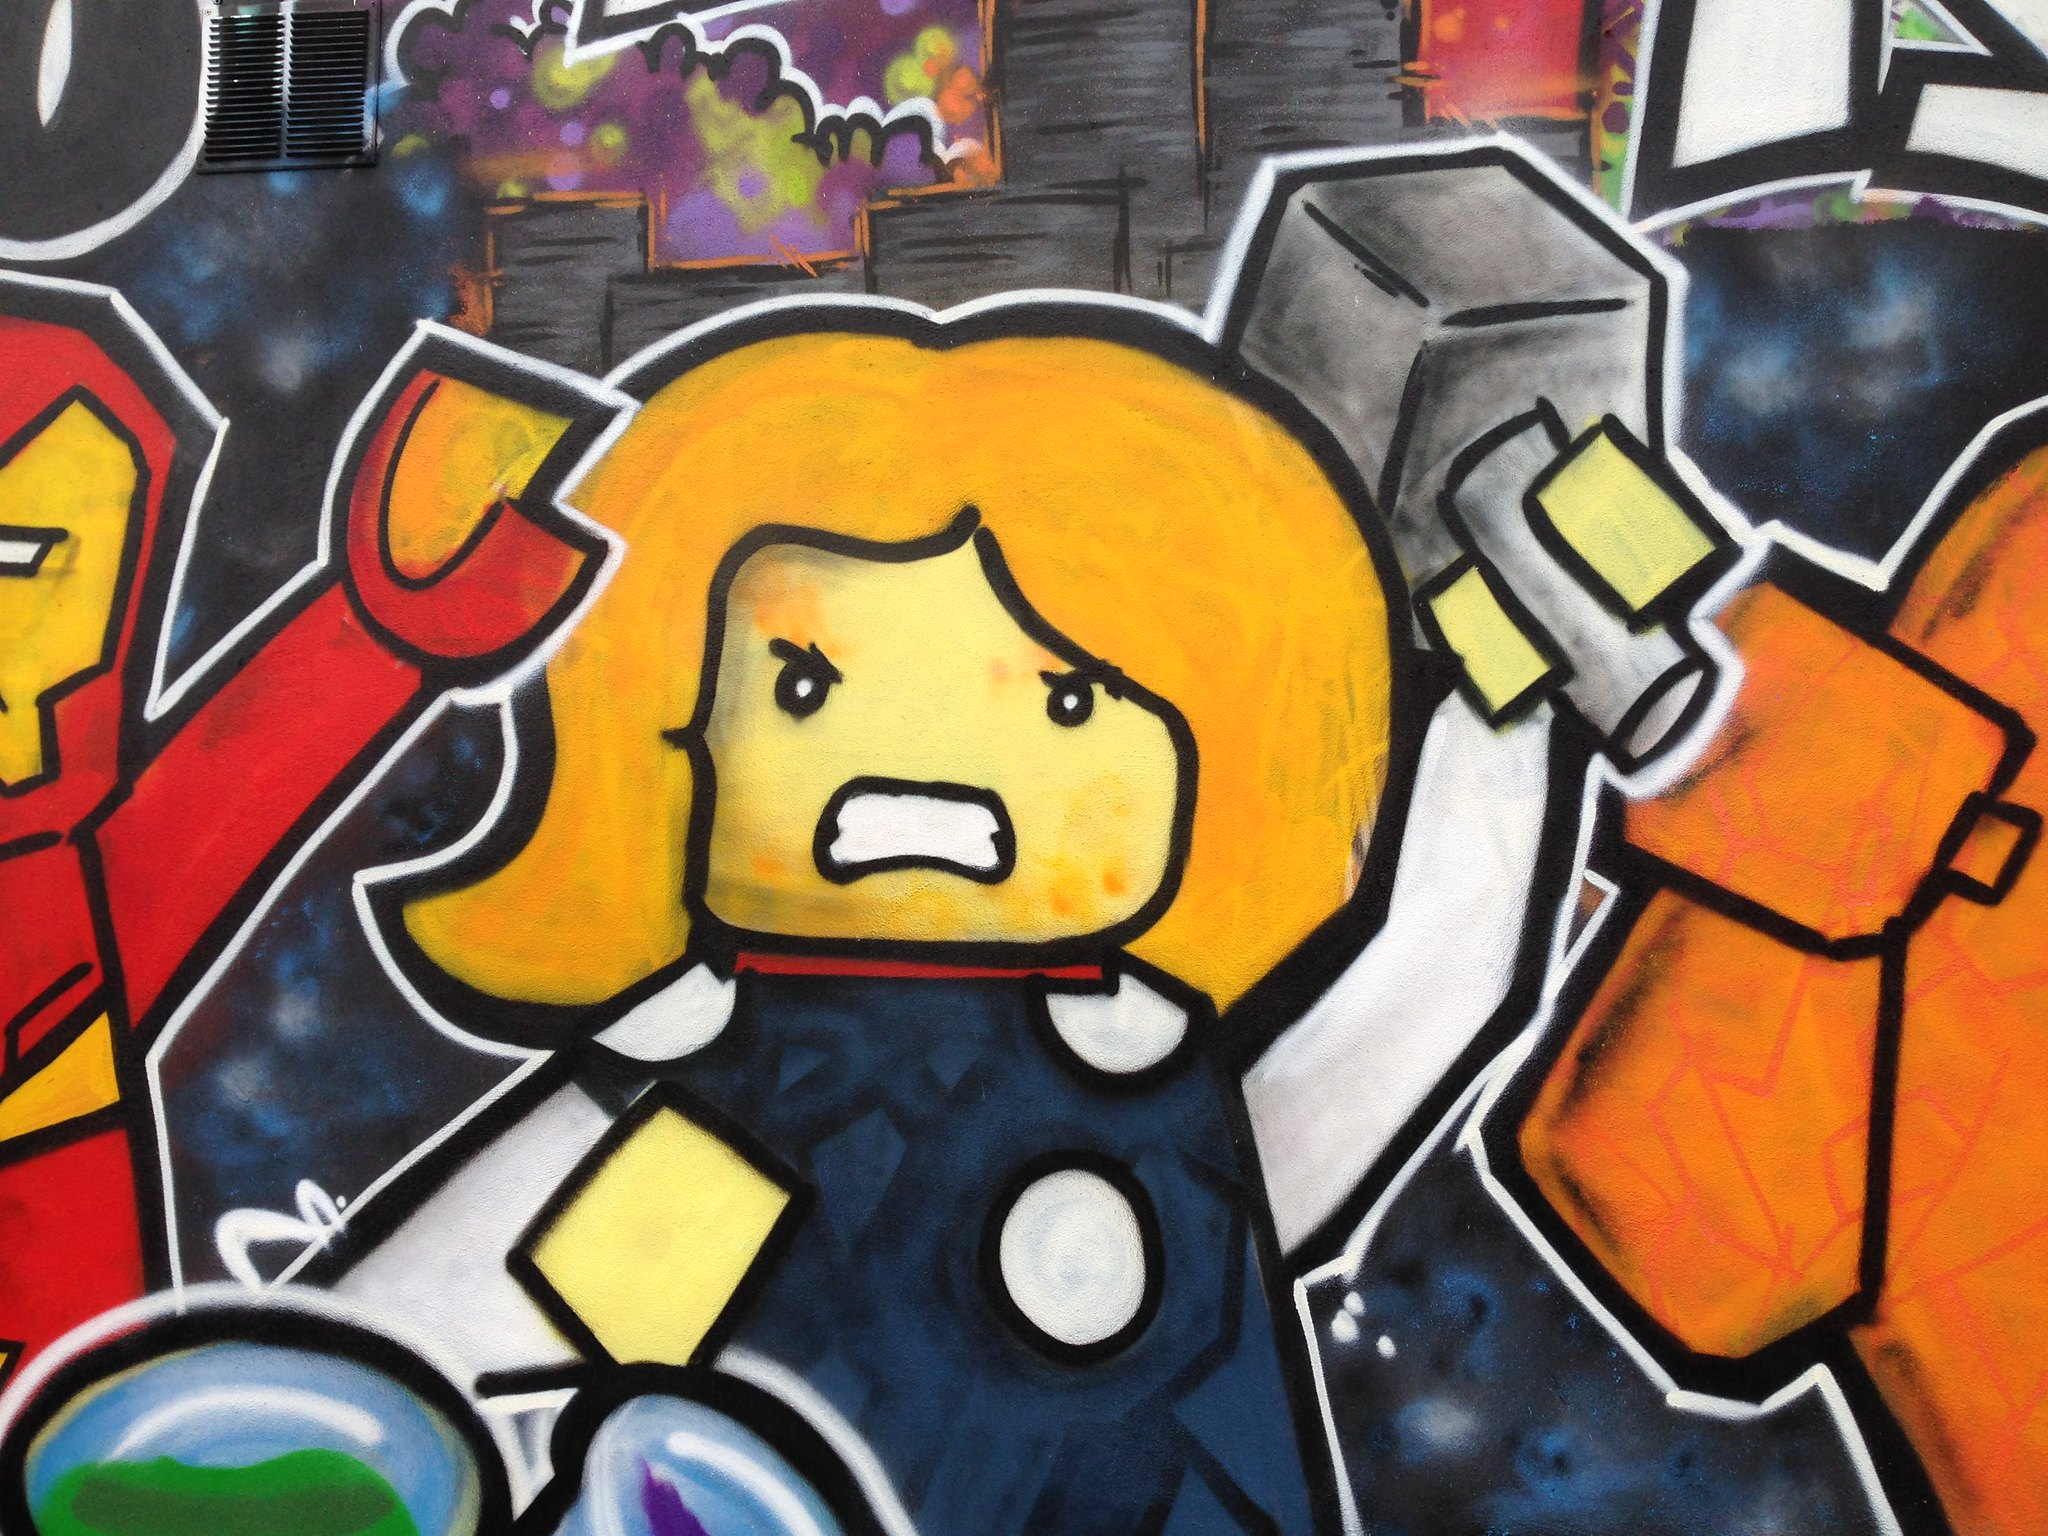 Marvel Lego Thor street art, Blackpool, by Dominic Carlyle